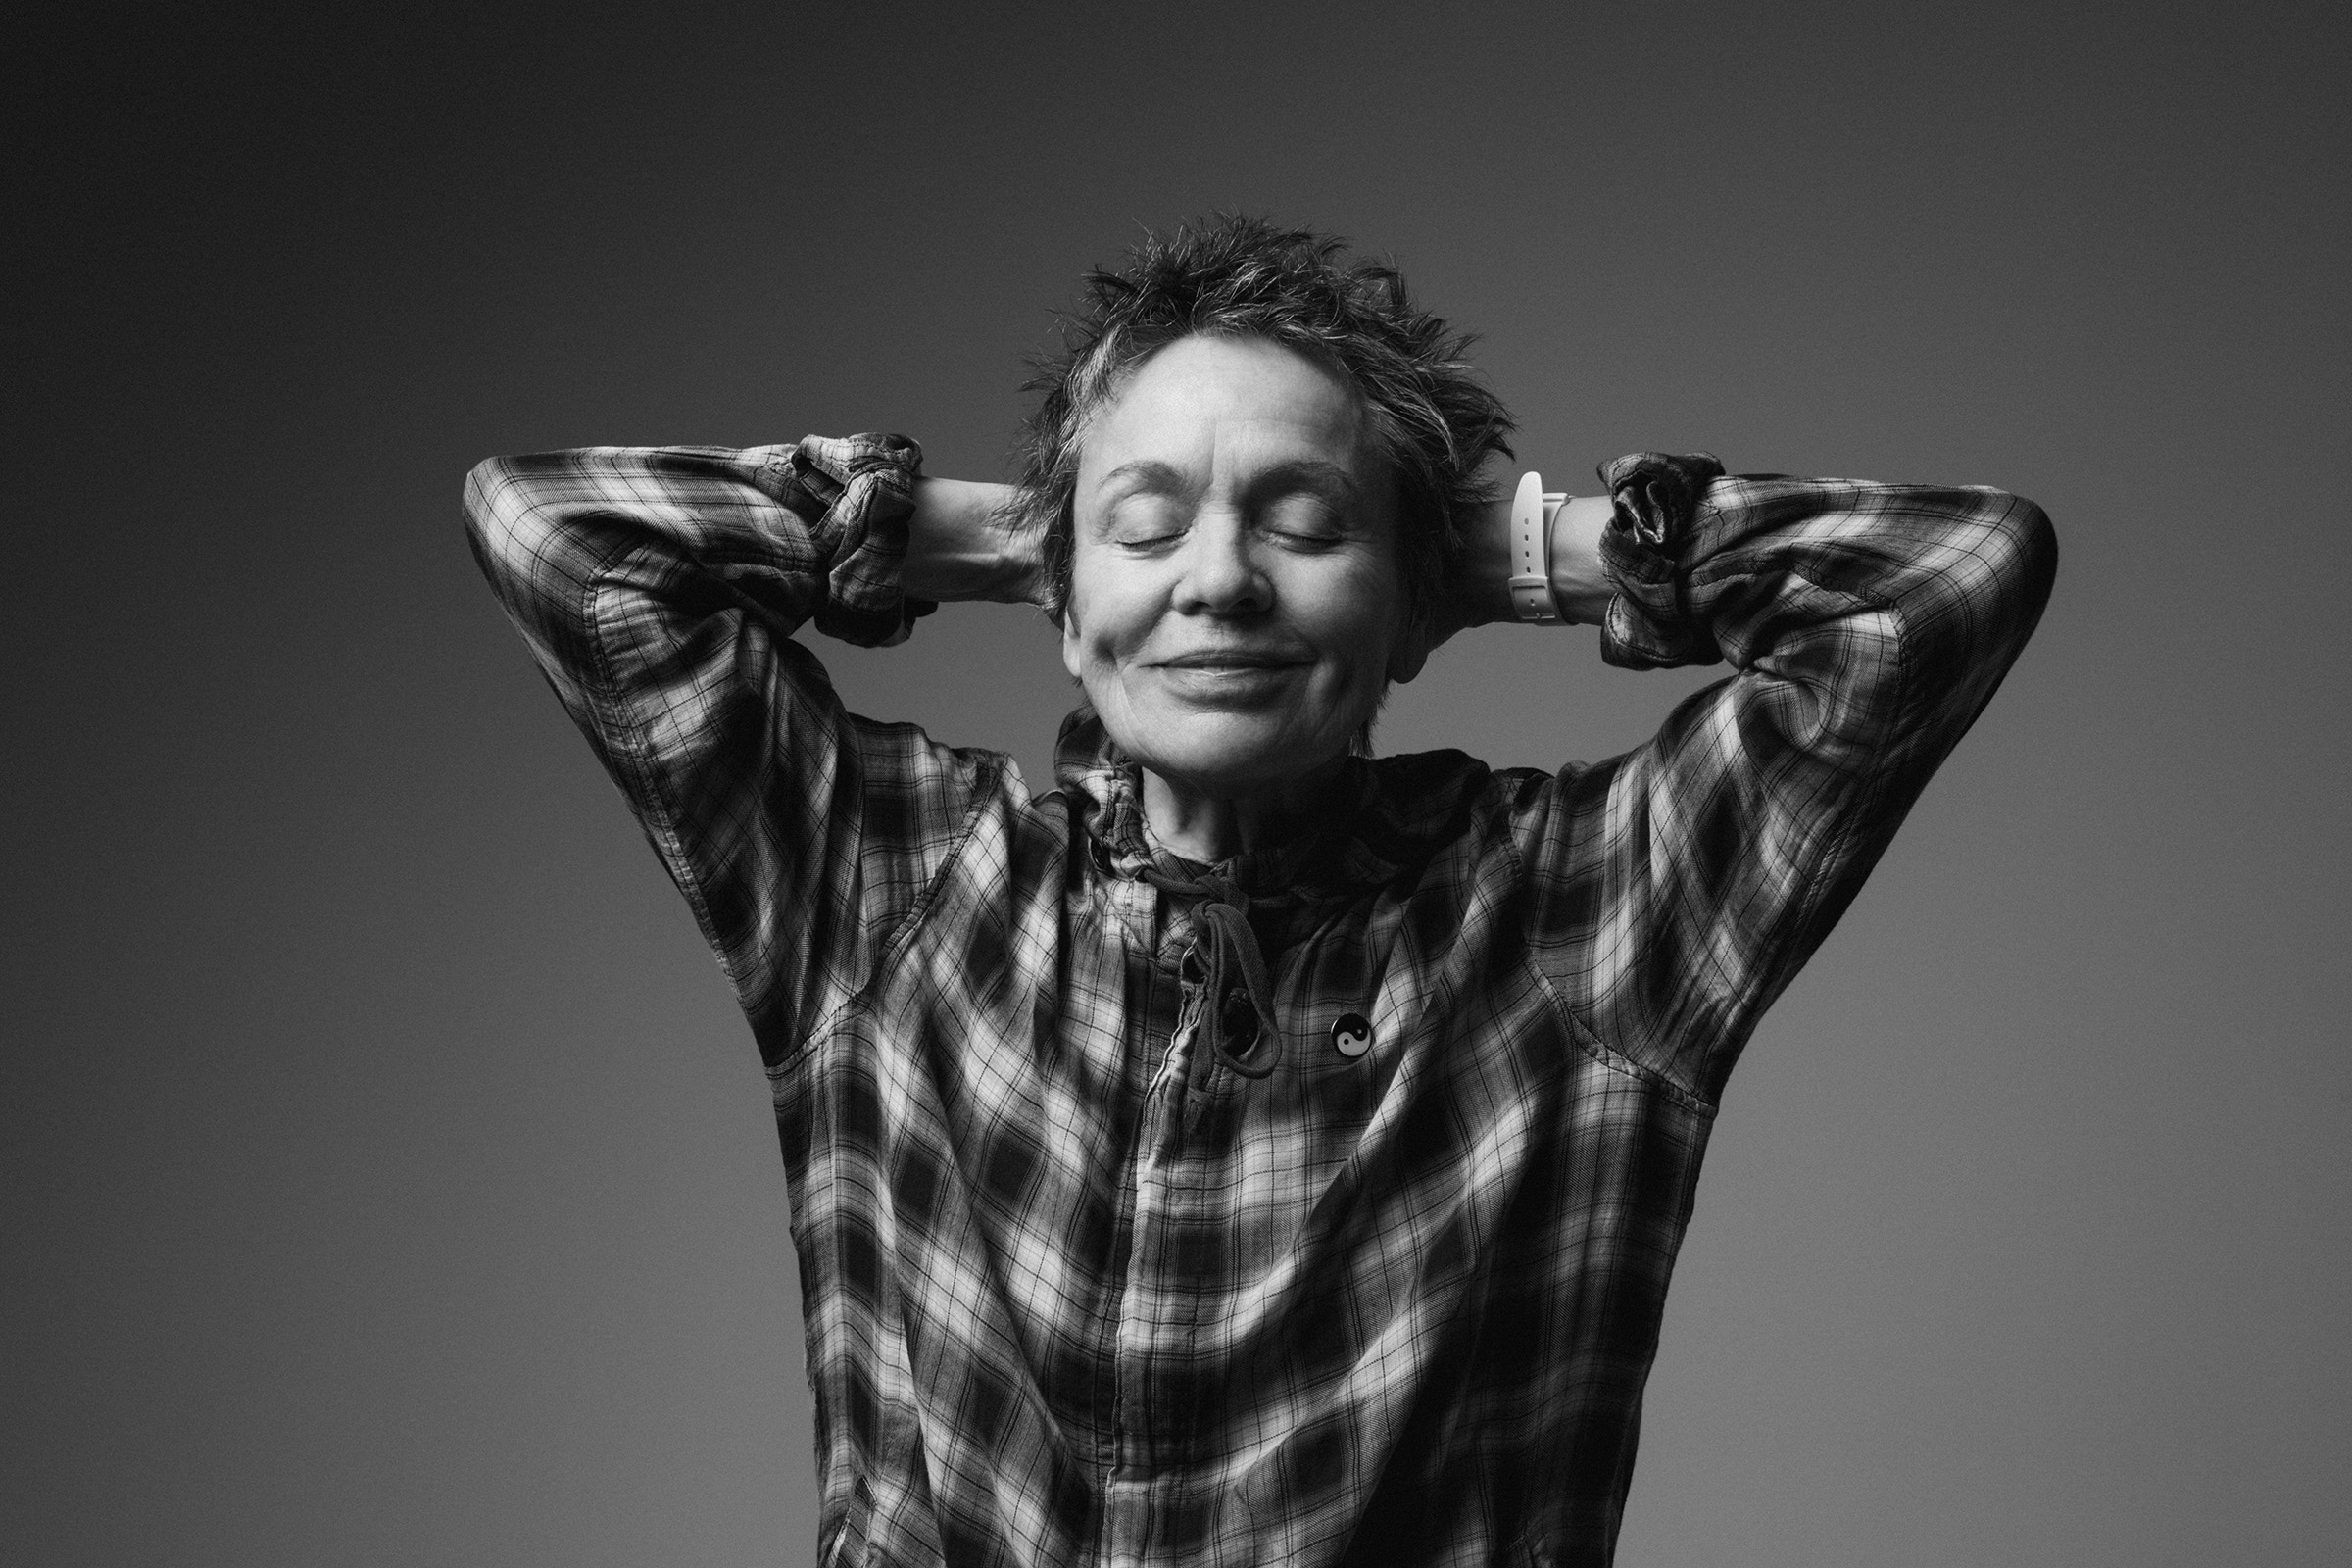 Portrait of Laurie Anderson. Photo by Ebru Yildiz